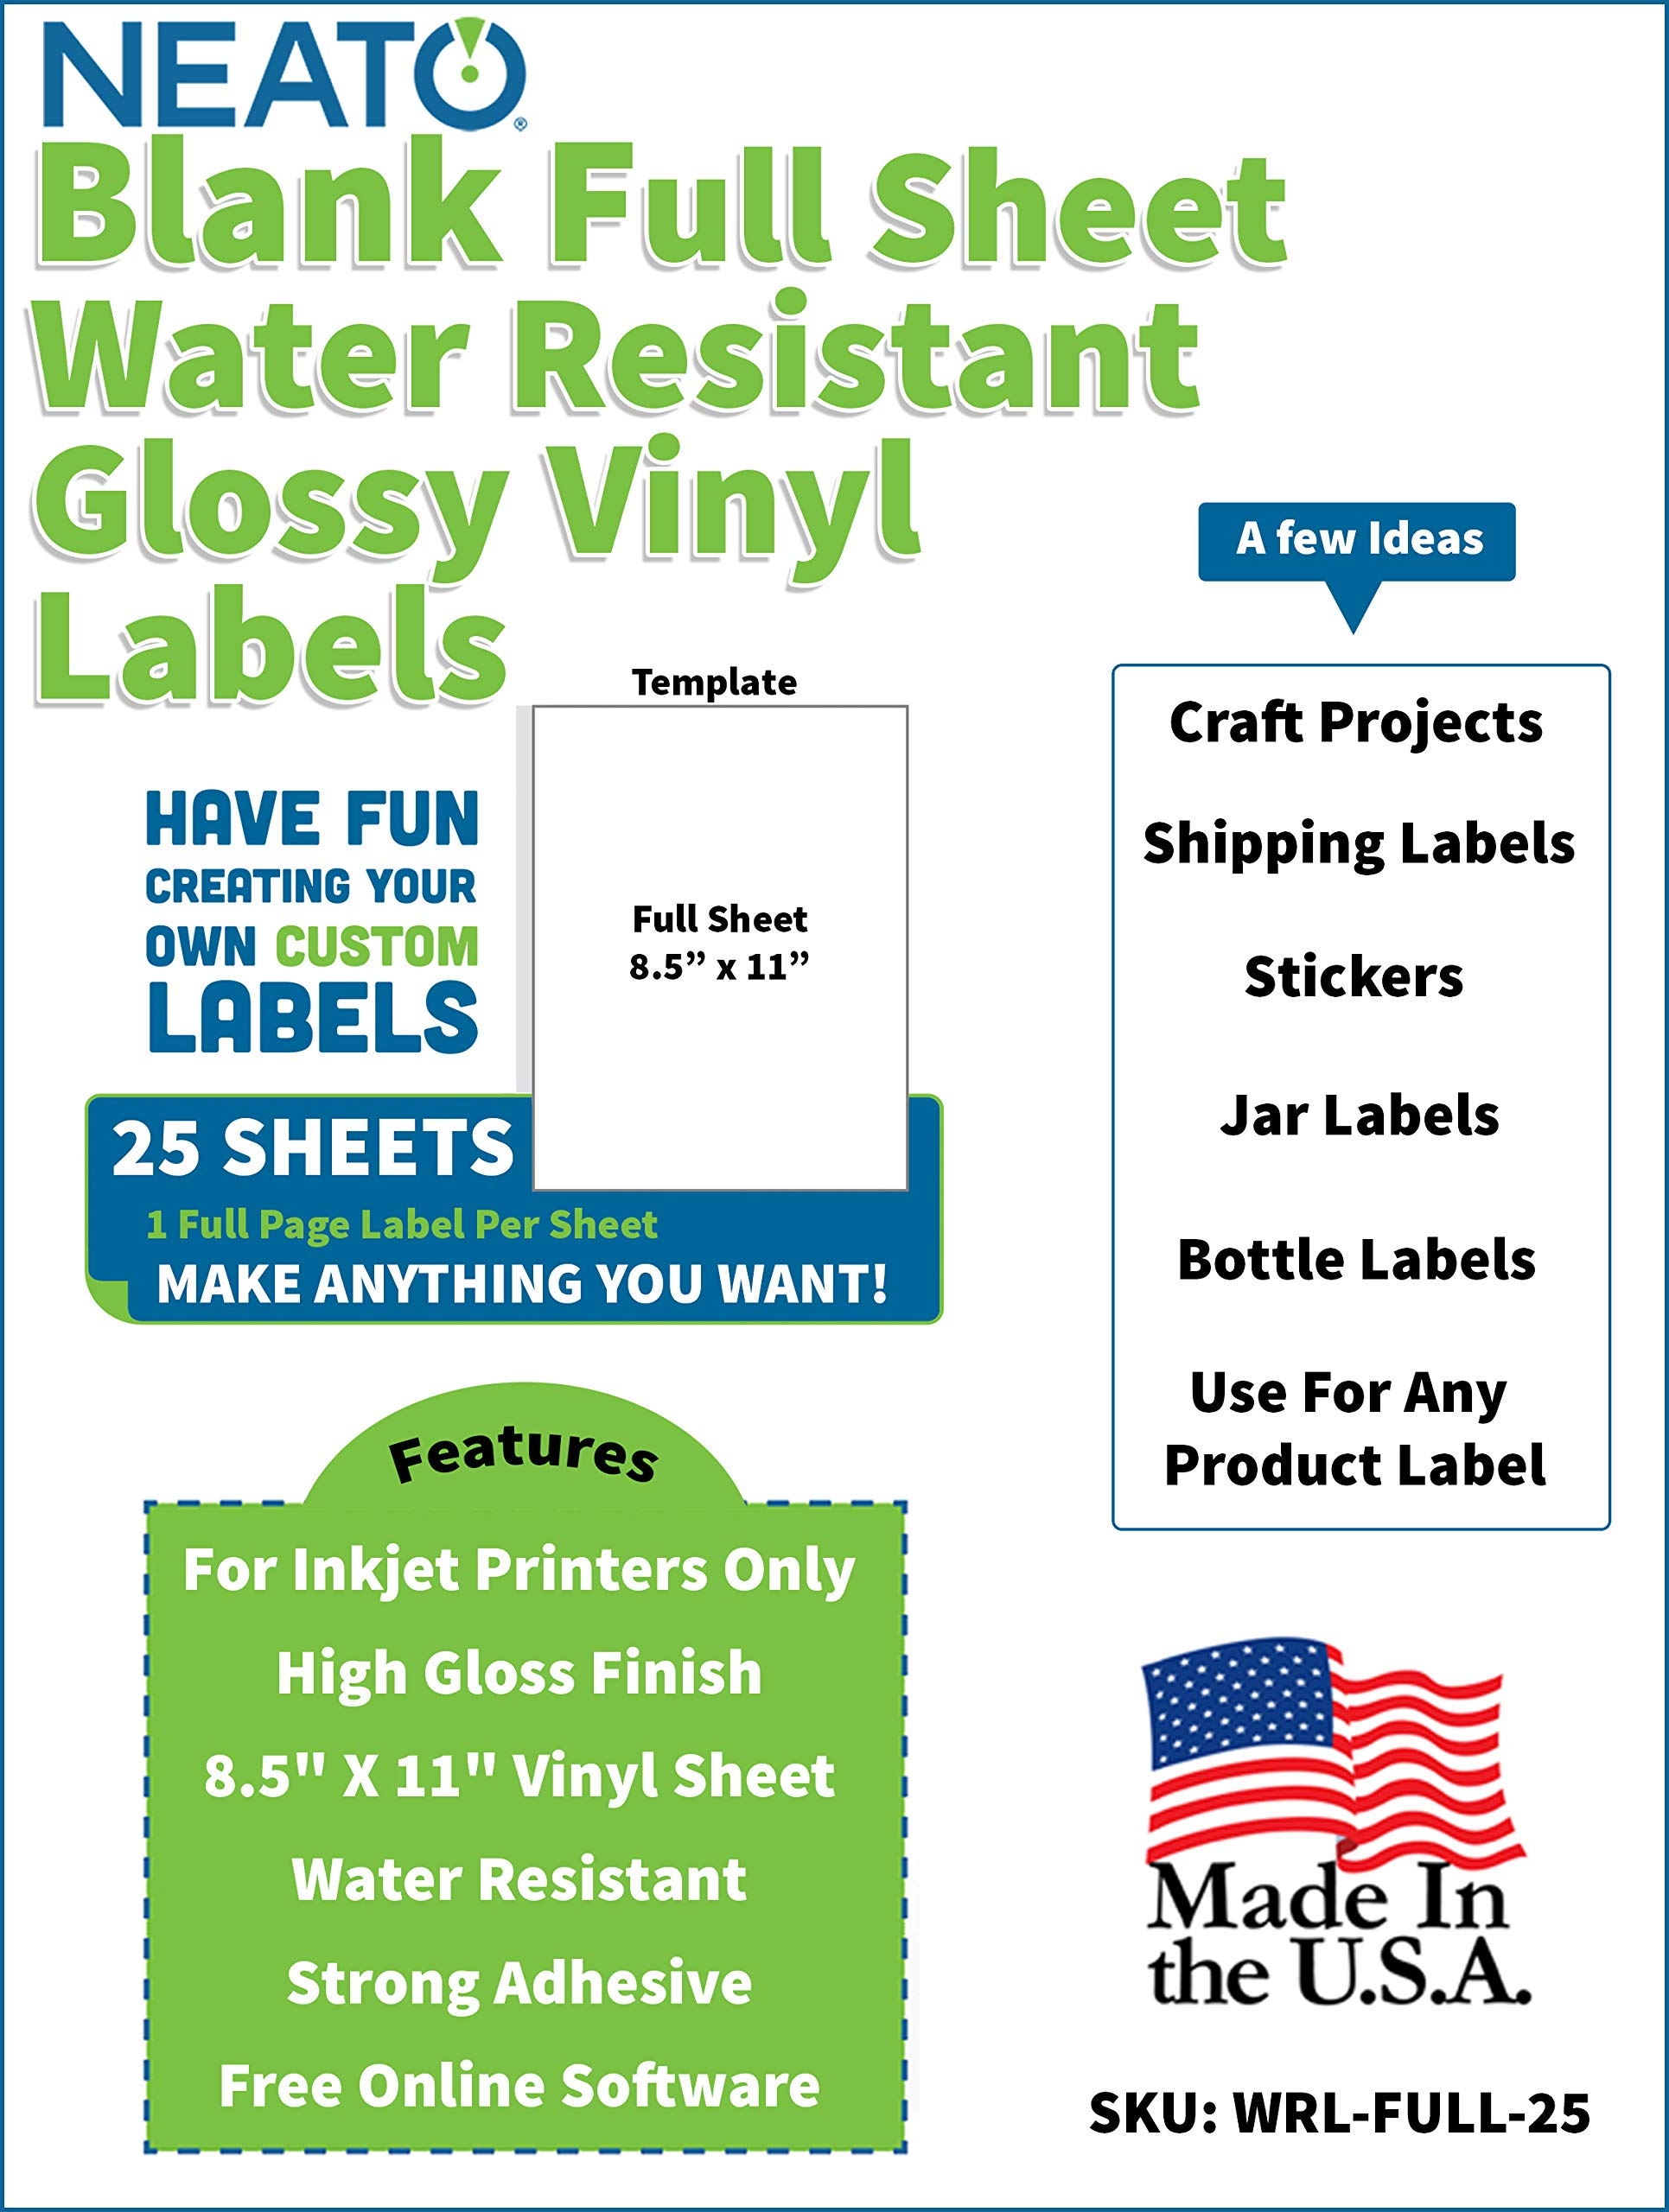 Printable Glossy Vinyl Sticker Paper - 8.5'' X 11'' Blank Custom Label Sticker Sheet - Water Resistant - Tear Free Labels - 25 White Sheets for Inkjet Printers by Neato by Neato